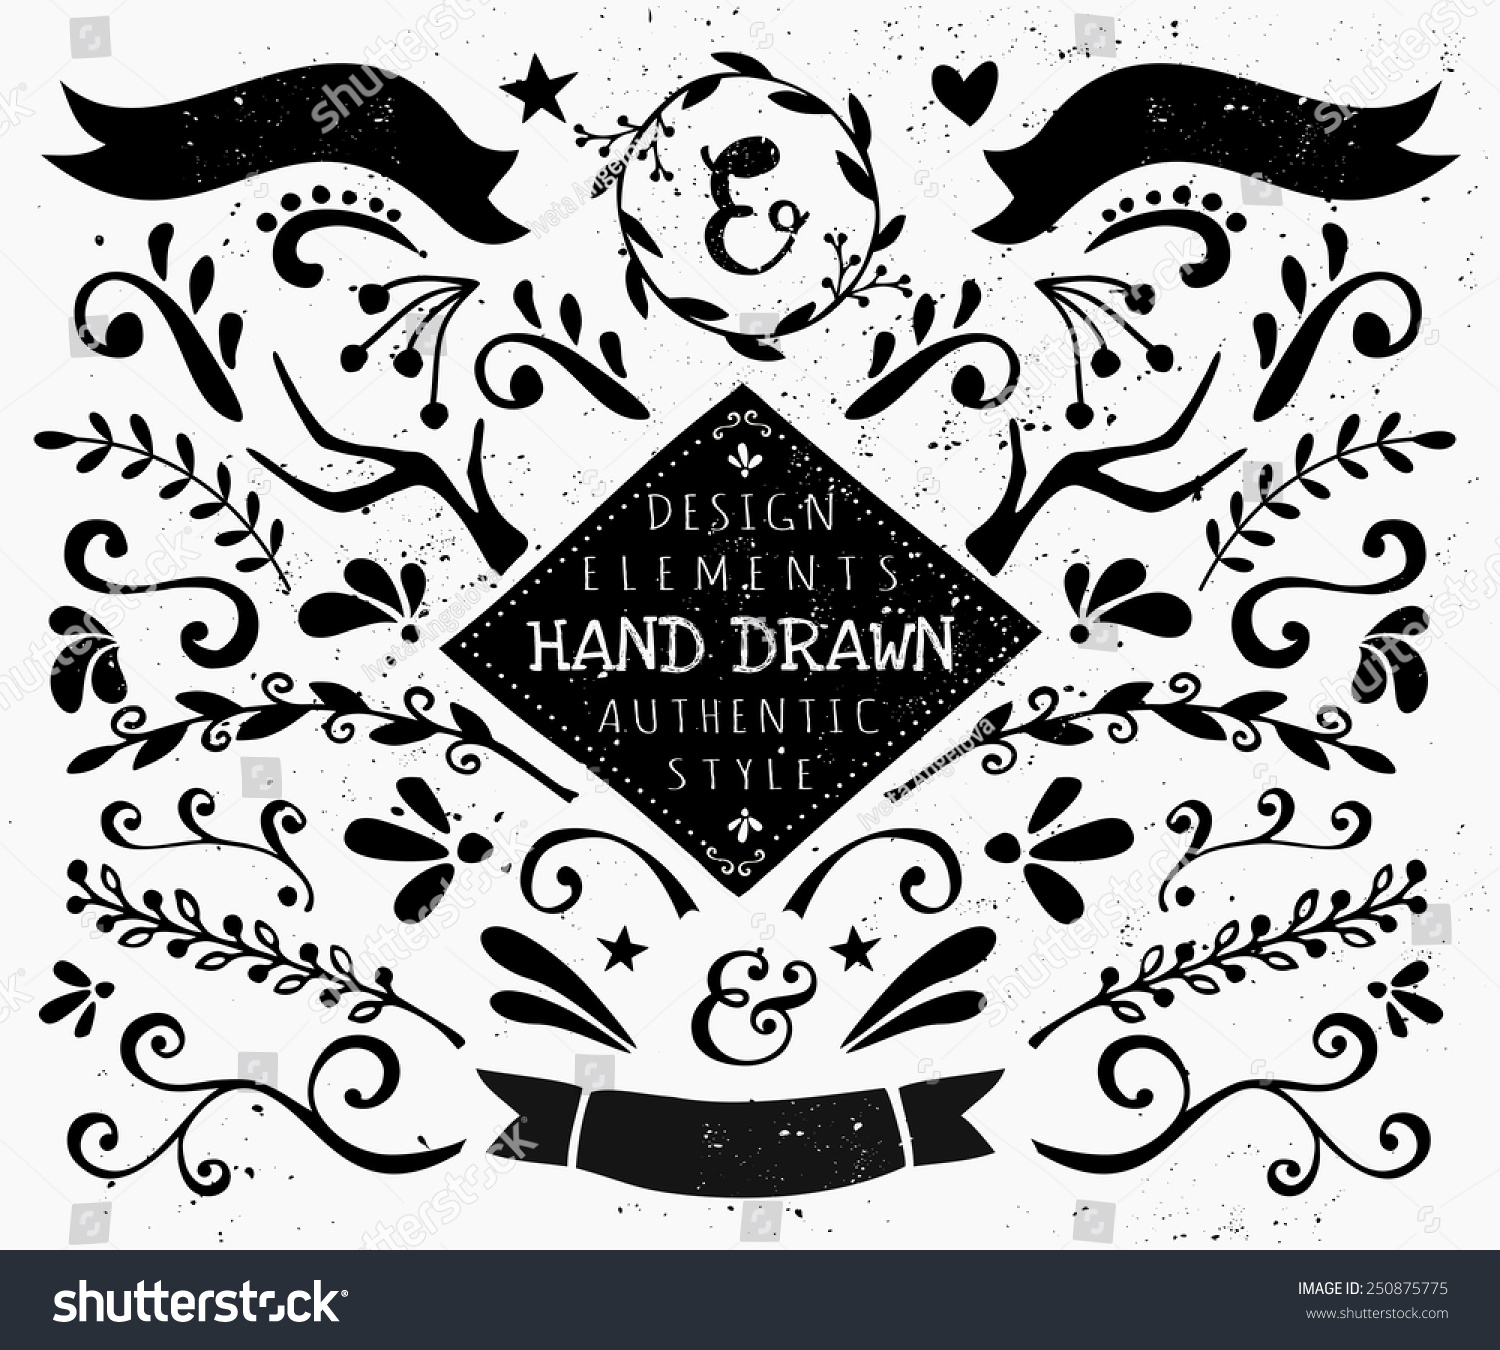 A set of vintage style design elements in black and white  Hand drawn  decorative elements. Set Vintage Style Design Elements Black Stock Vector 250875775